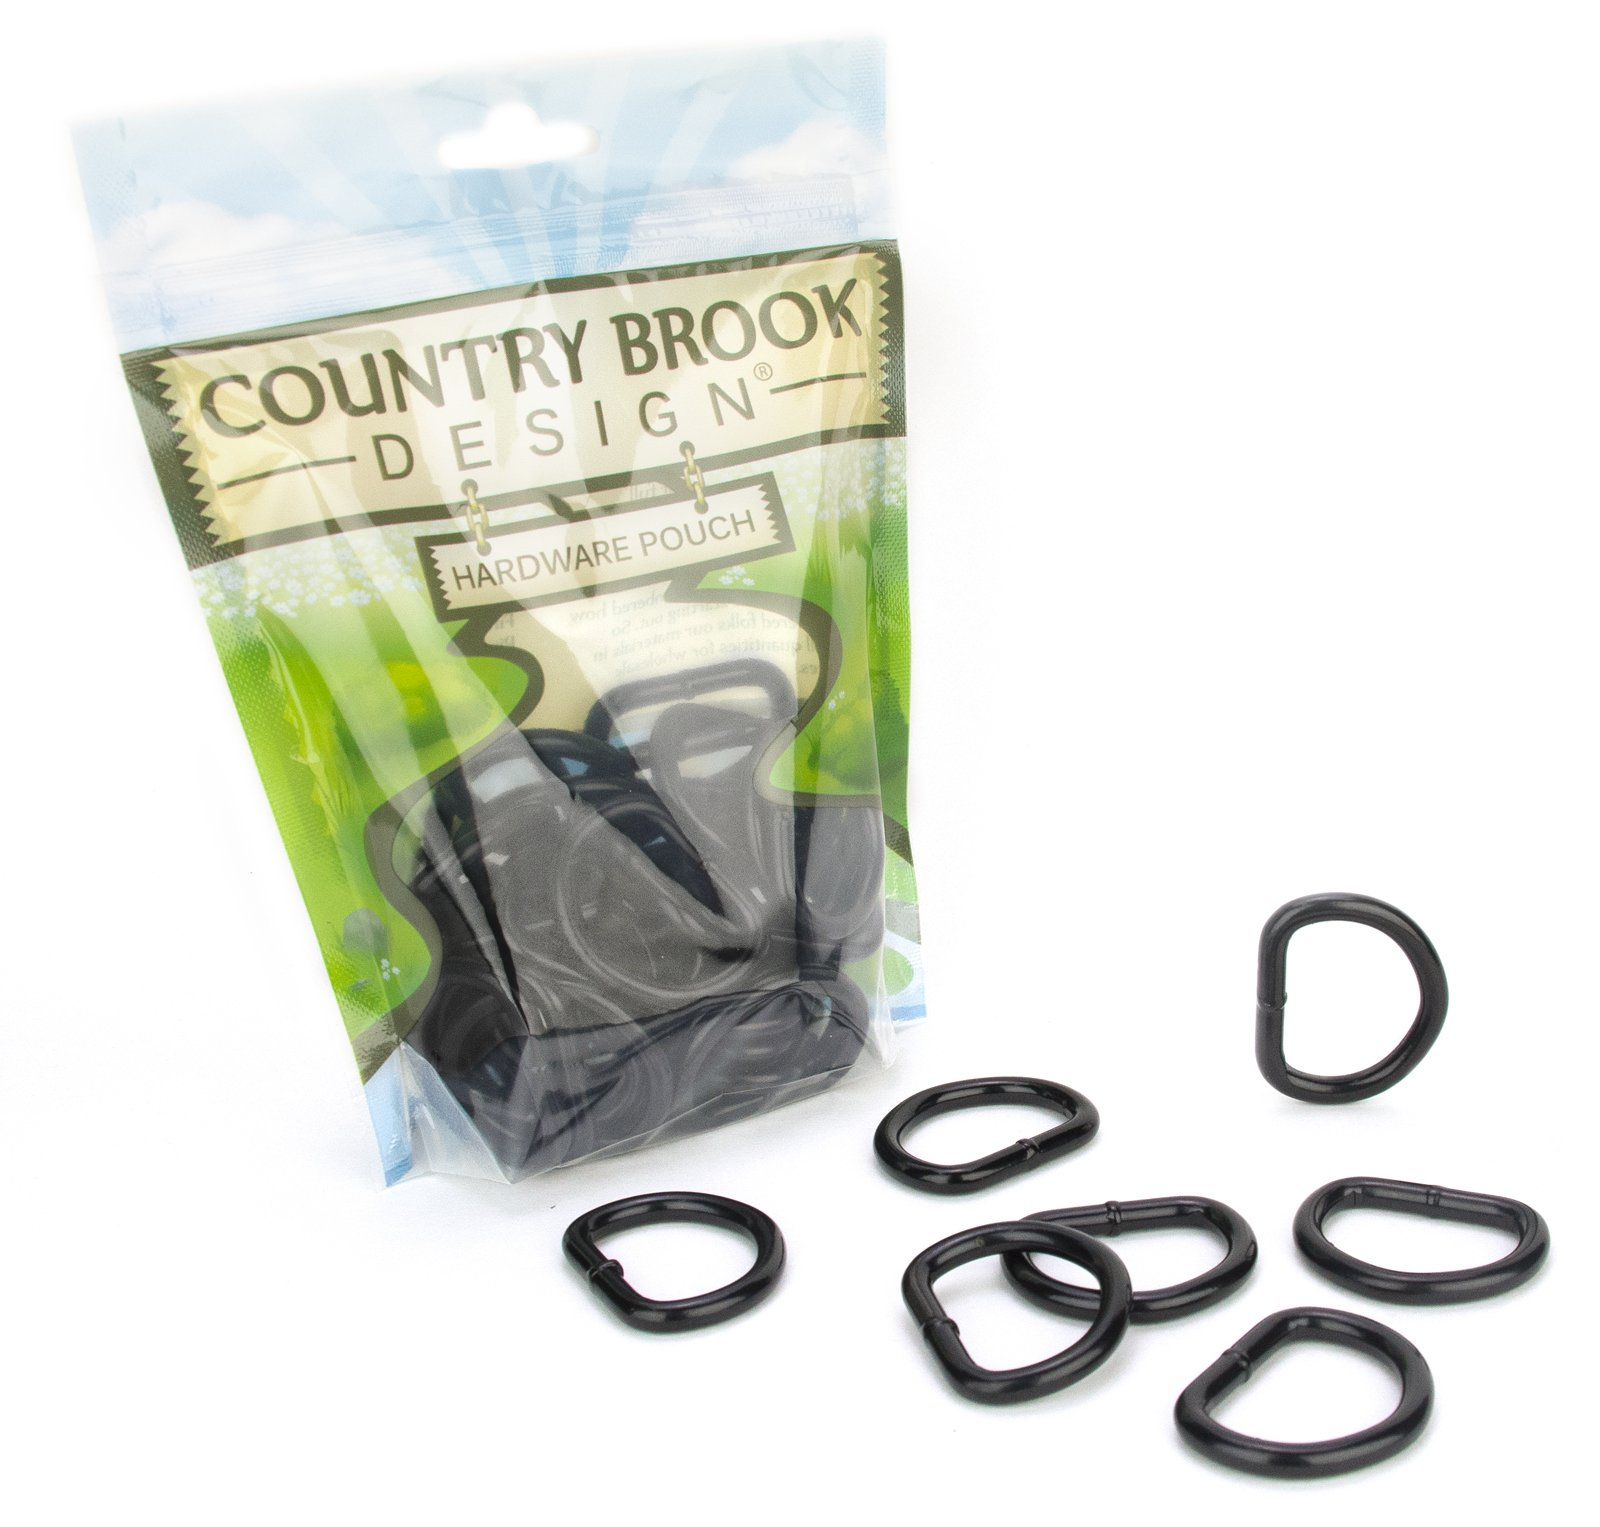 Country Brook Design - 1 Inch Steel Welded Powder Coated D-Rings (50 Pack)